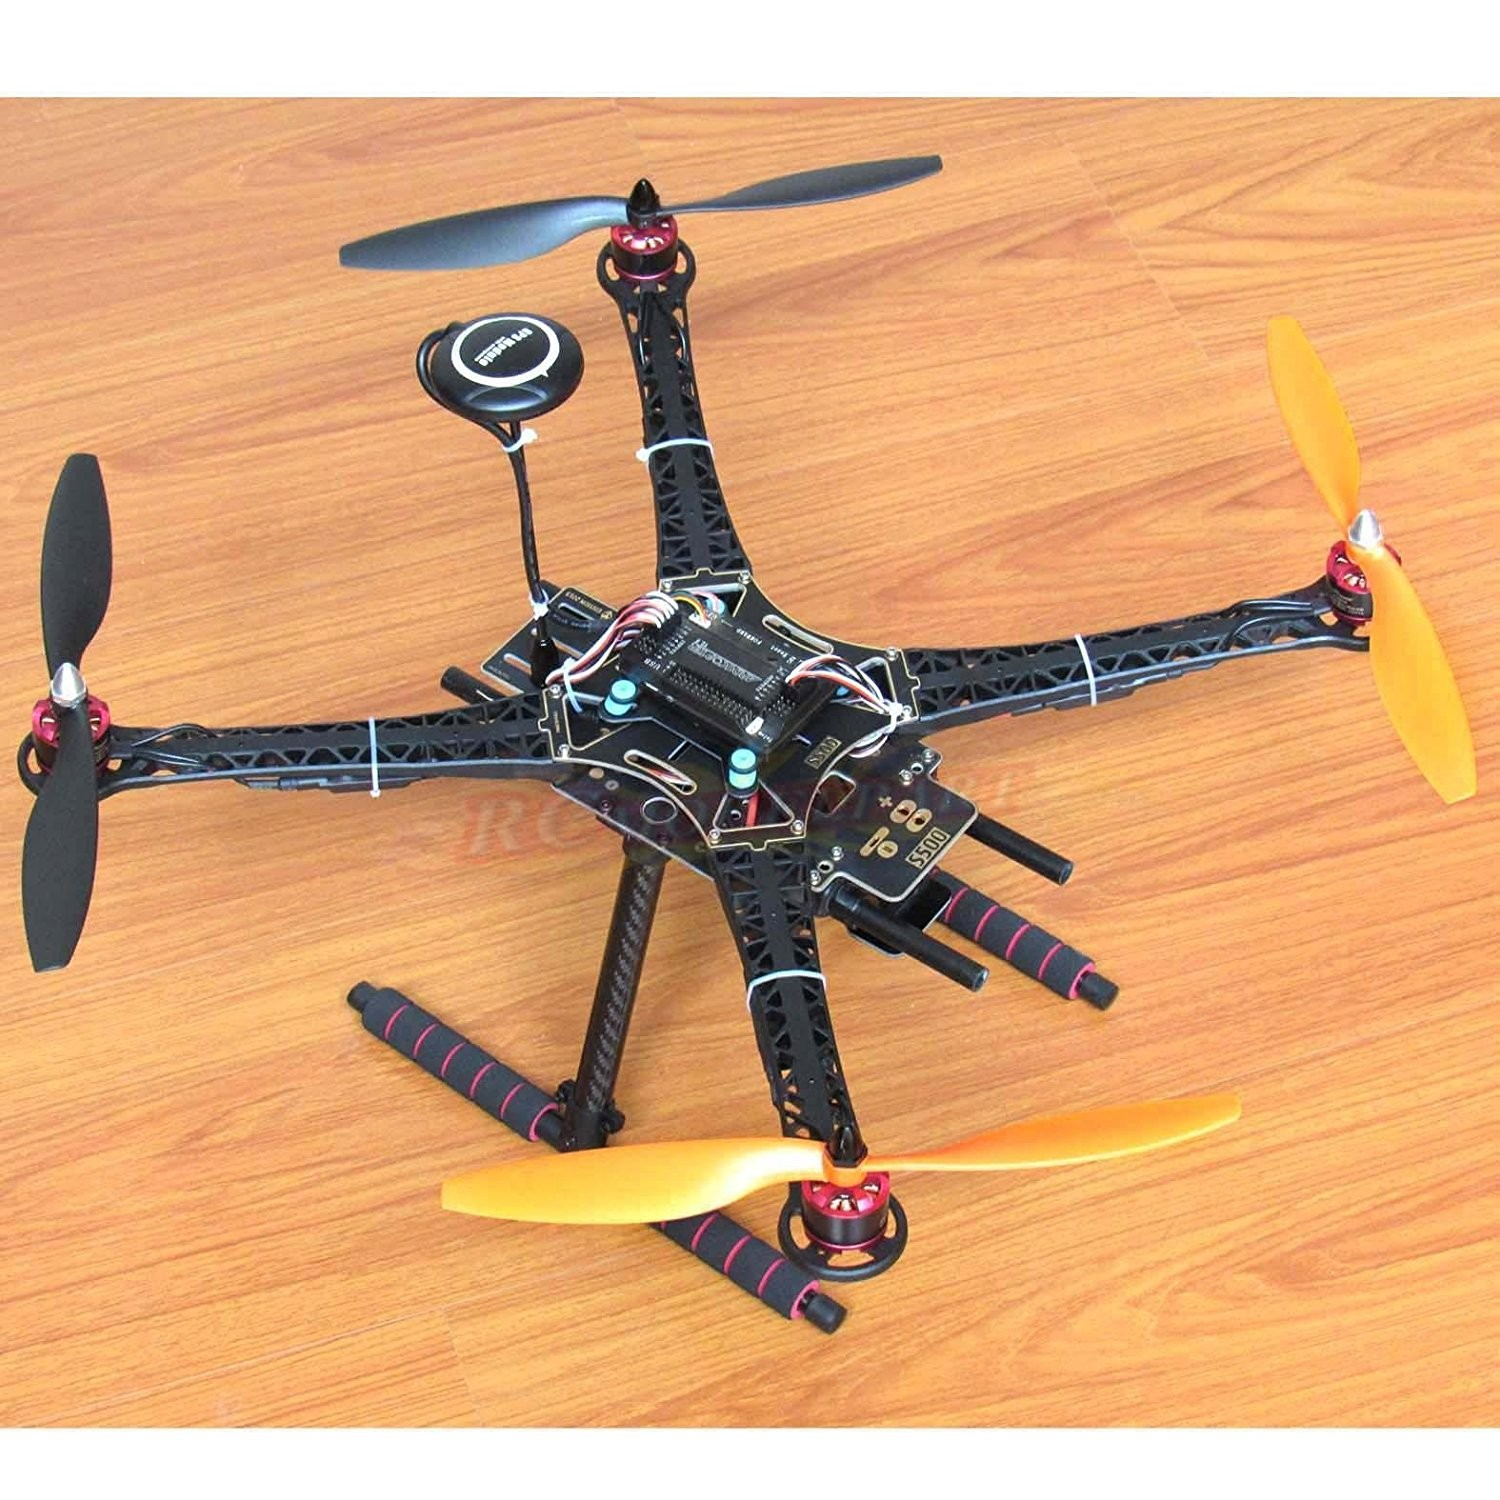 Best Hobbypower Diy S500 Quadcopter With Apm28 Flight Controller Esc 30a Brushless Motor Speed Rc For Airplane Amarm0343us 1 Srqy